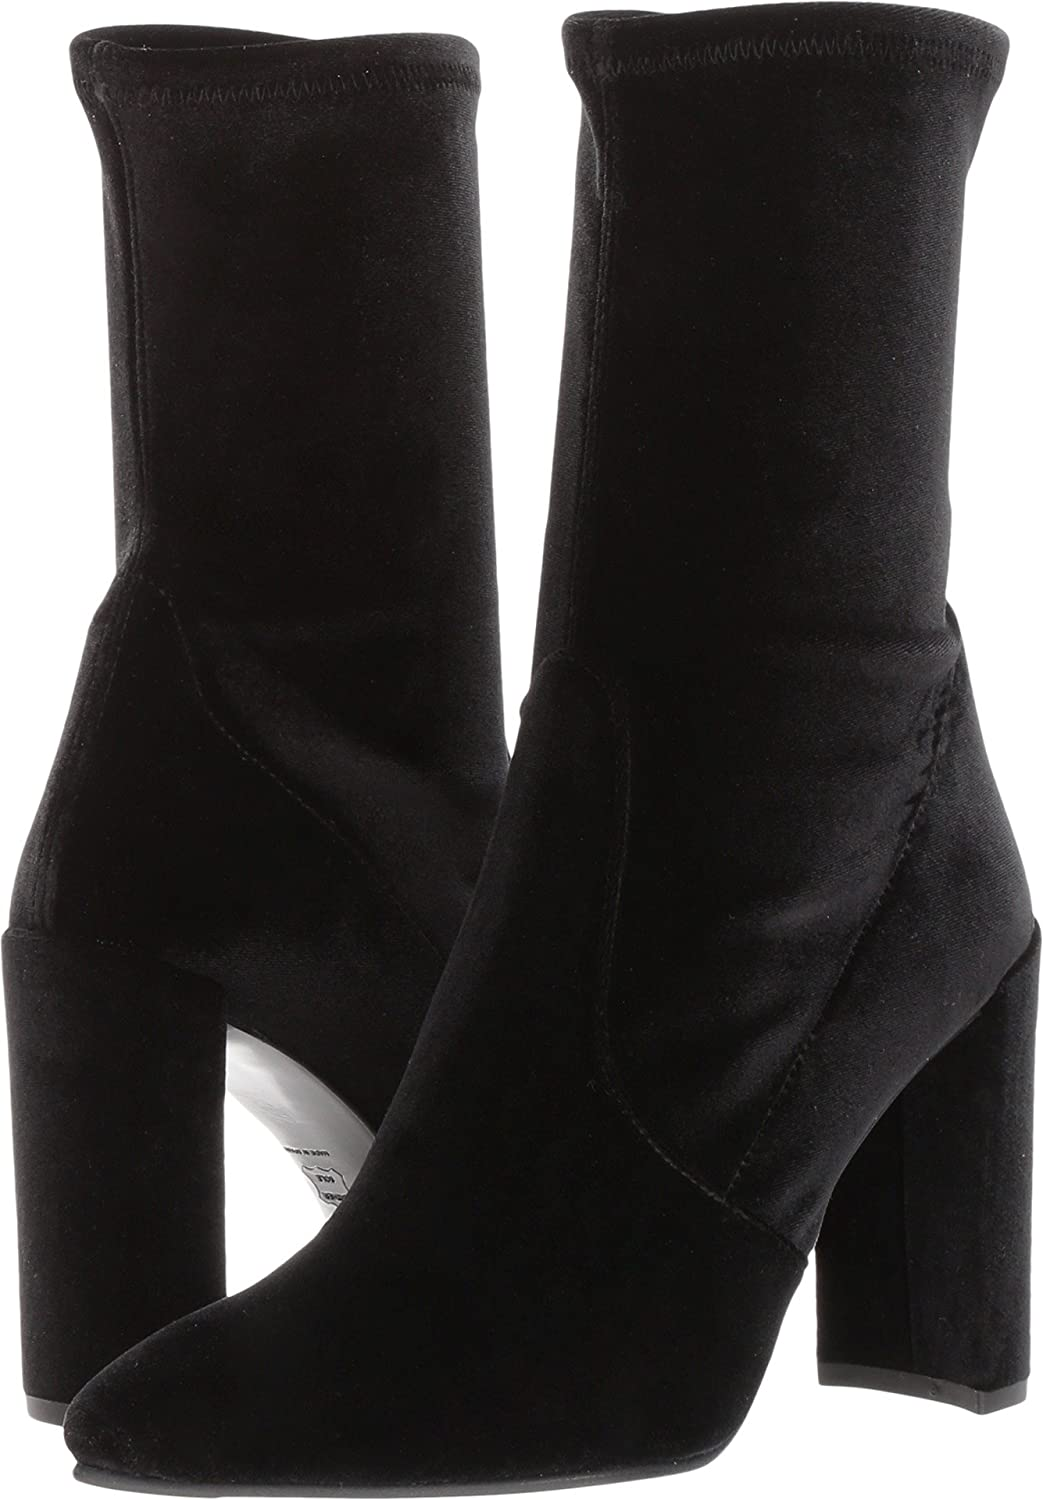 Stuart Weitzman Women's Clinger Ankle Boot B06W2HKSHQ 10 B(M) US|Nero Stretch Velvet